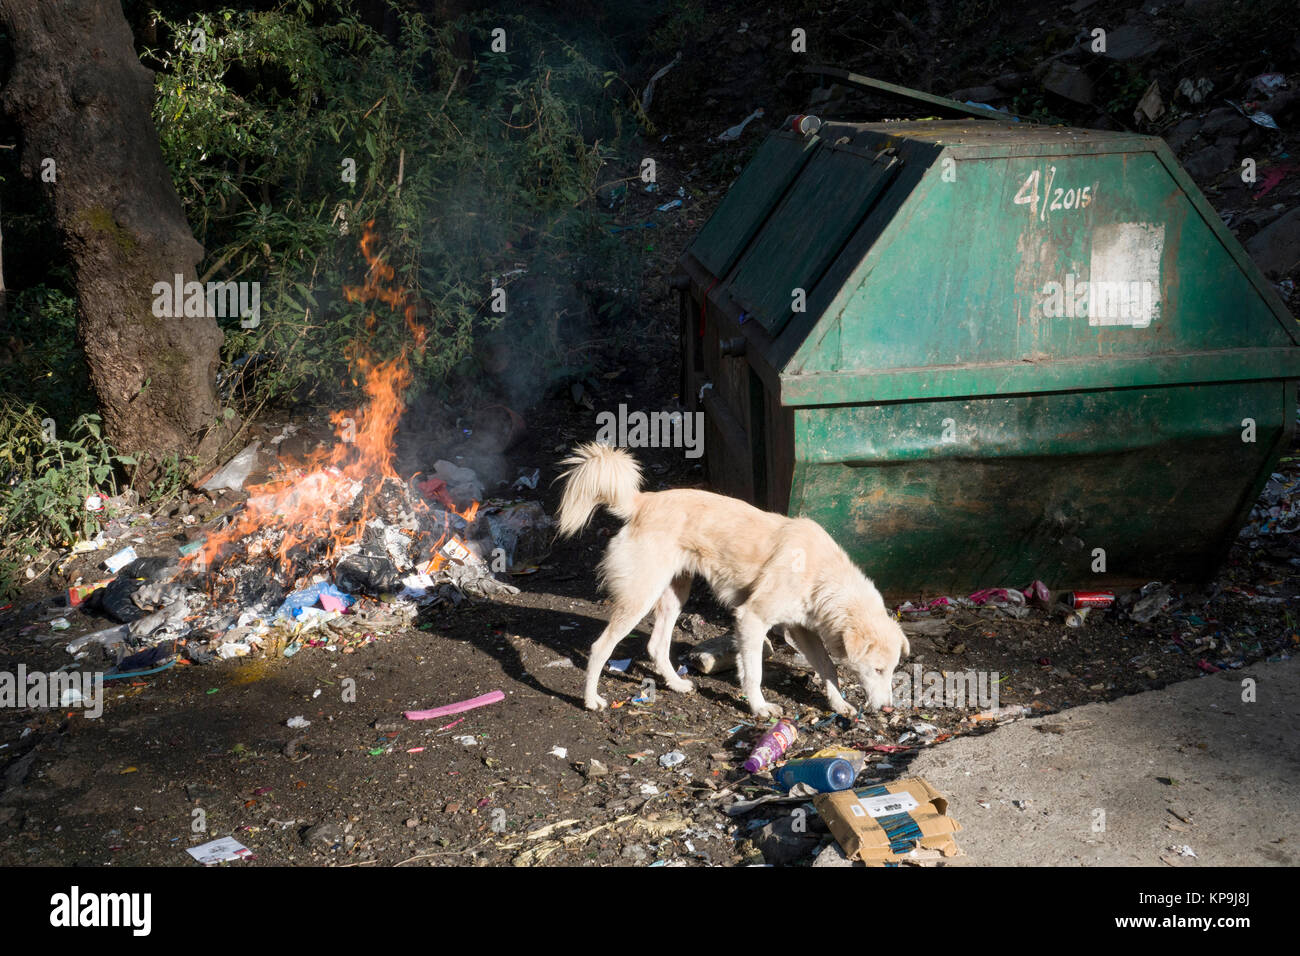 Street dog scavenges for rubbish around dumpster while fire burns plastics and other household garbage - Stock Image